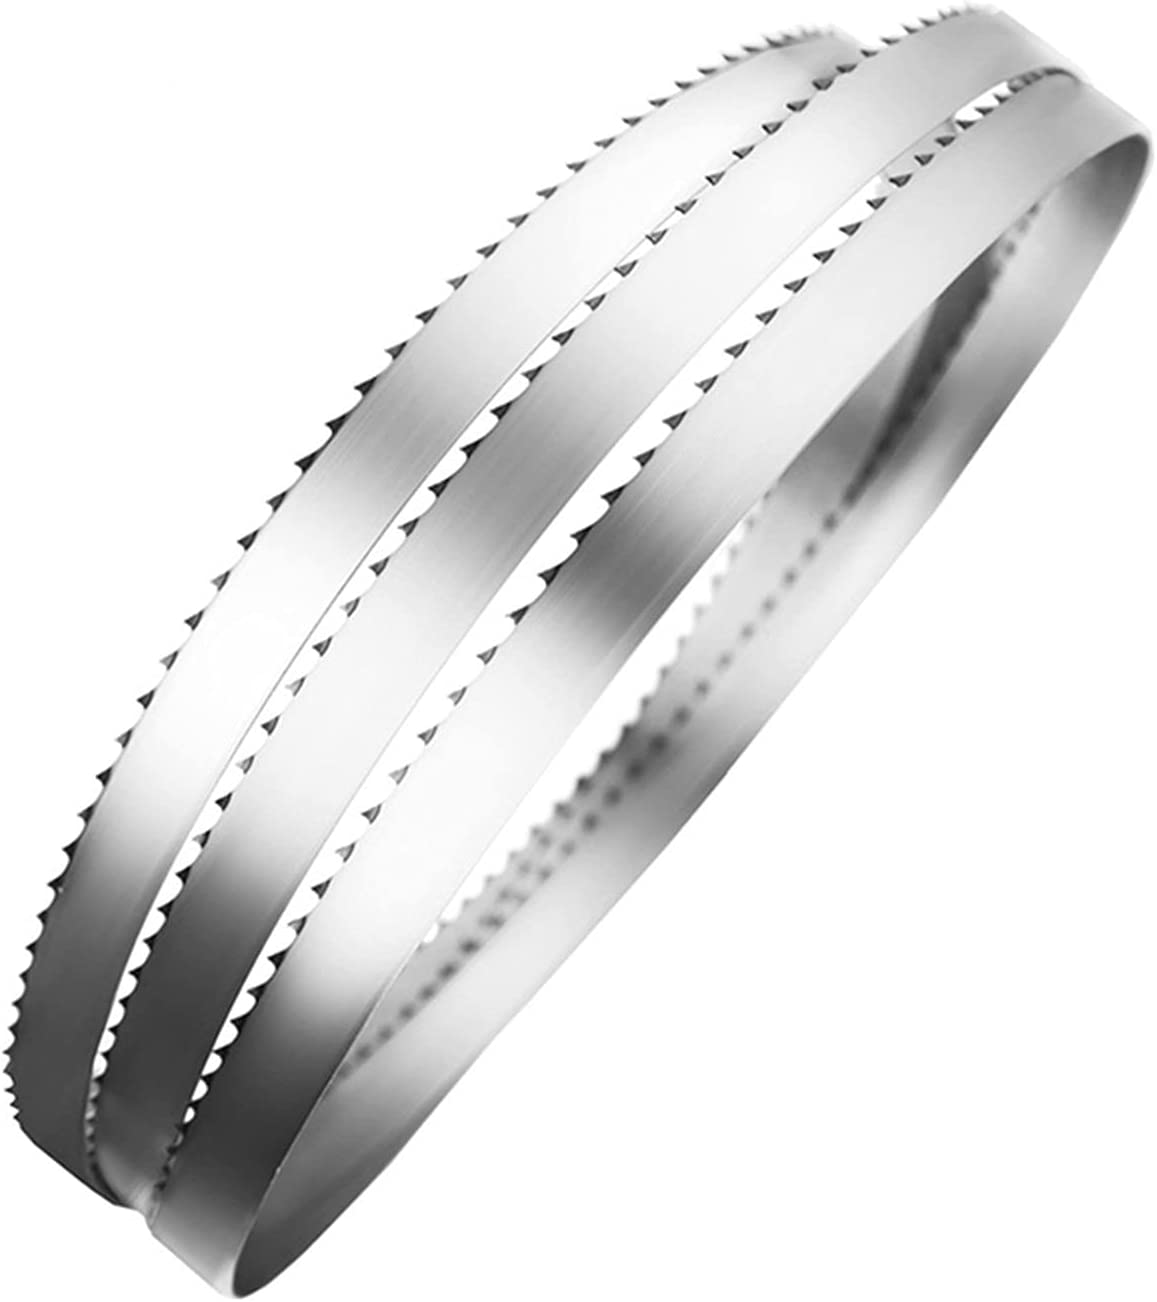 ADUCI 2 Pieces 2085160.55mm4 Teeth Meat Band Saw Blades 2085mm16